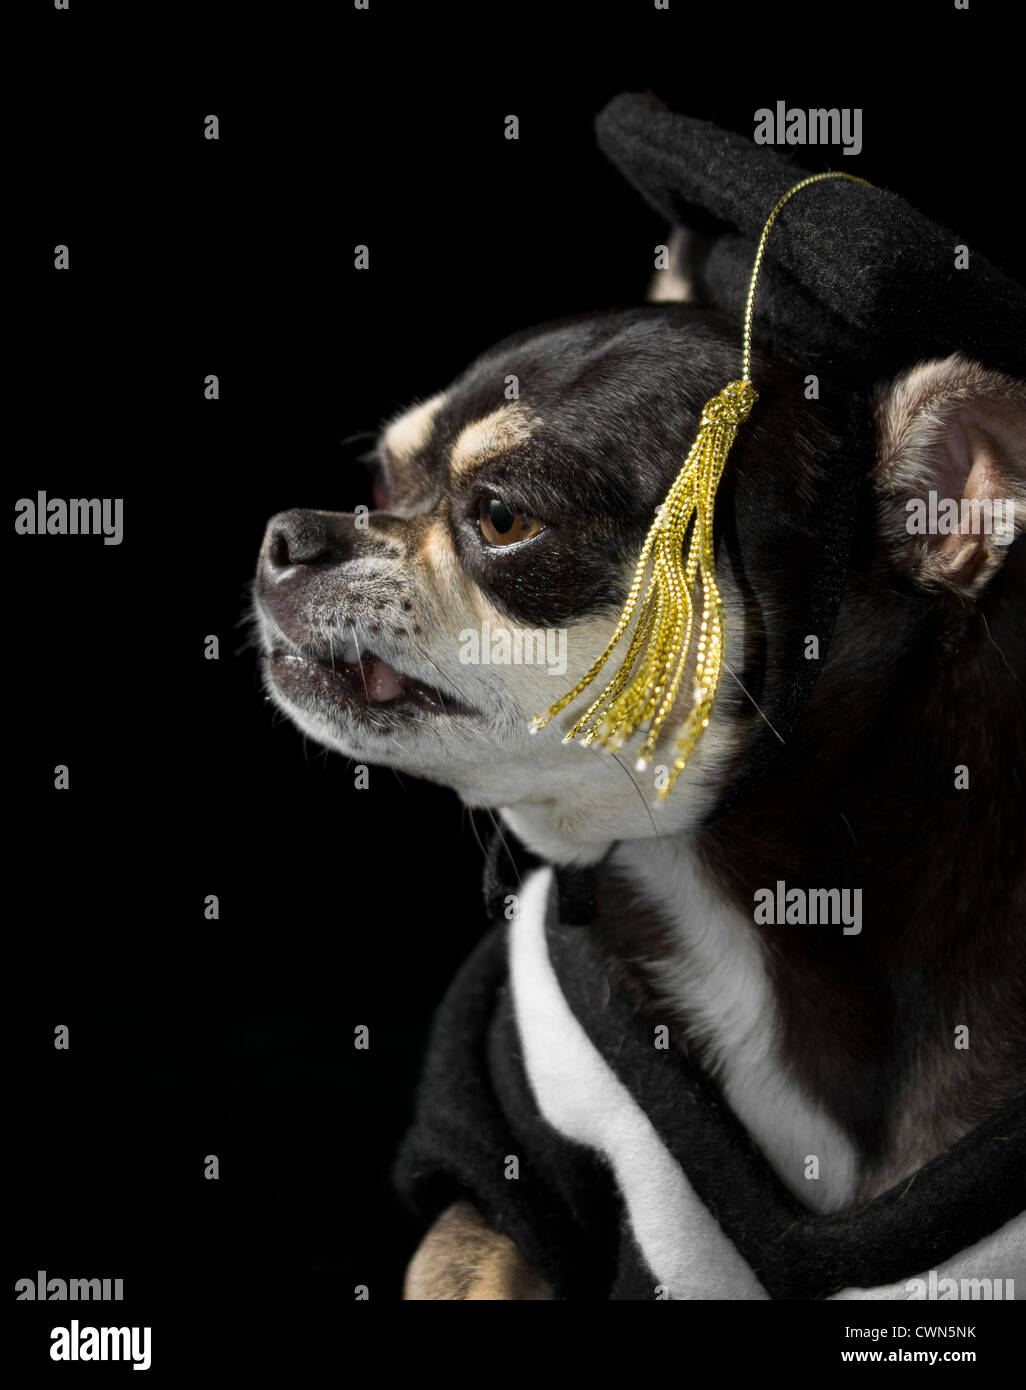 Cute Chihuahua In Cap And Gown For Graduation On Black Background